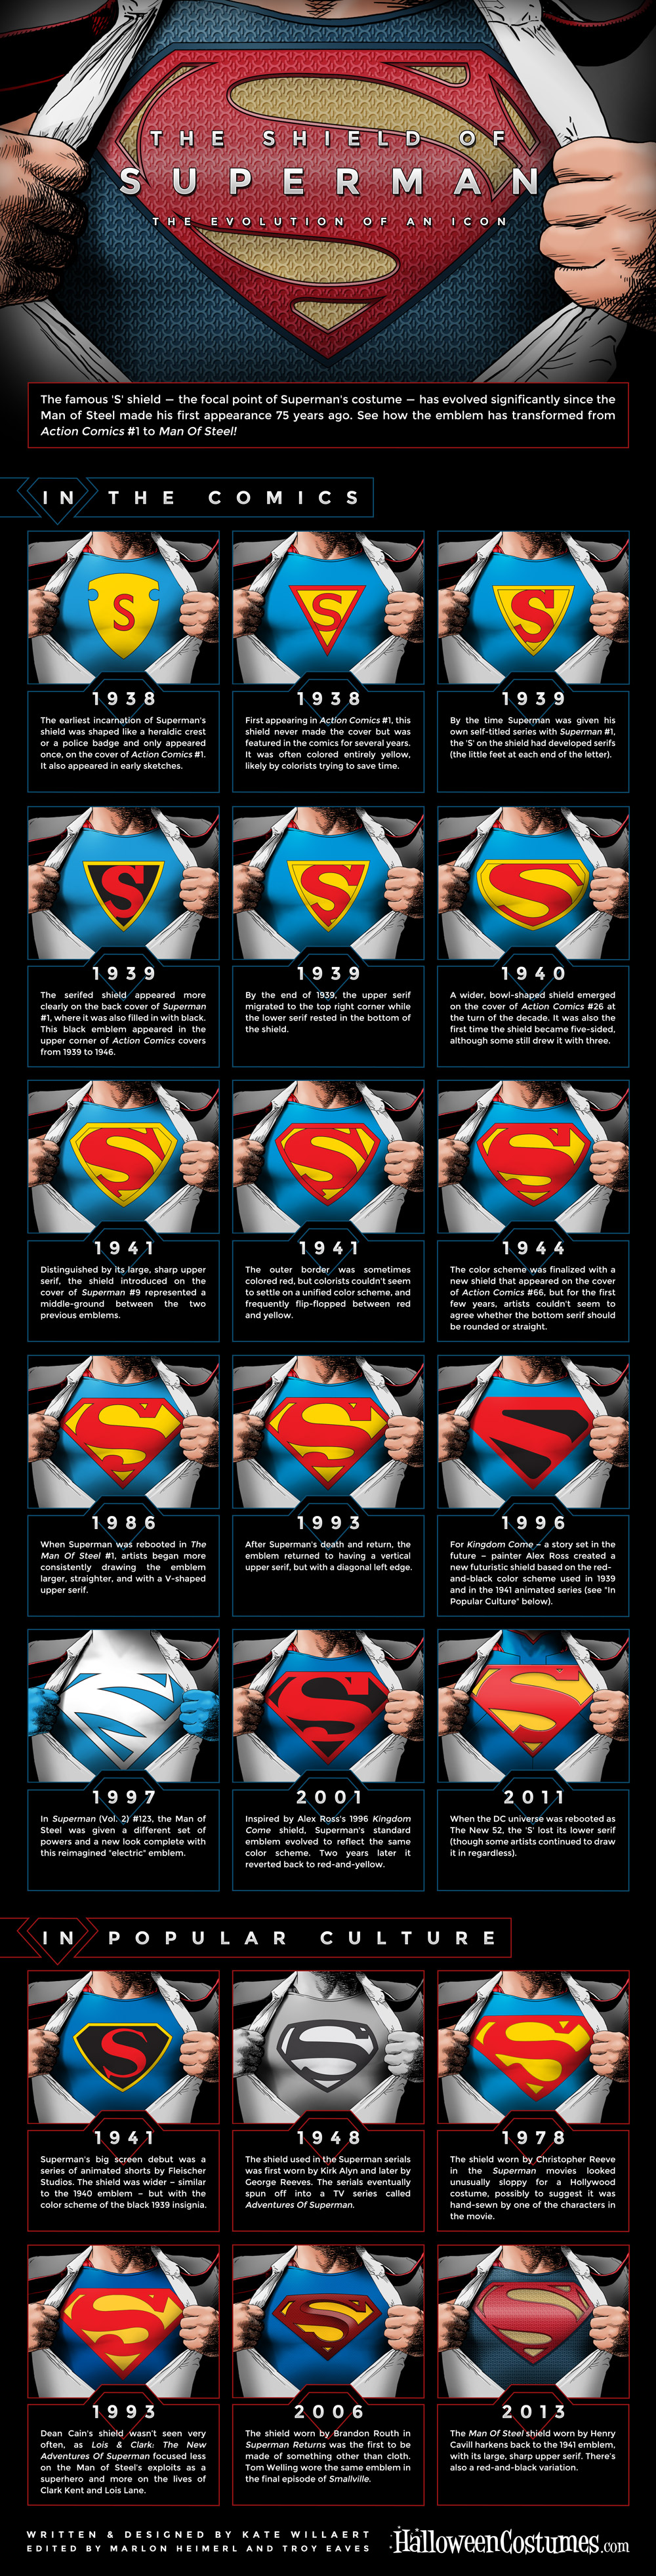 HalloweenCostumes.com: The Shield of Superman: The Evolution of an Icon